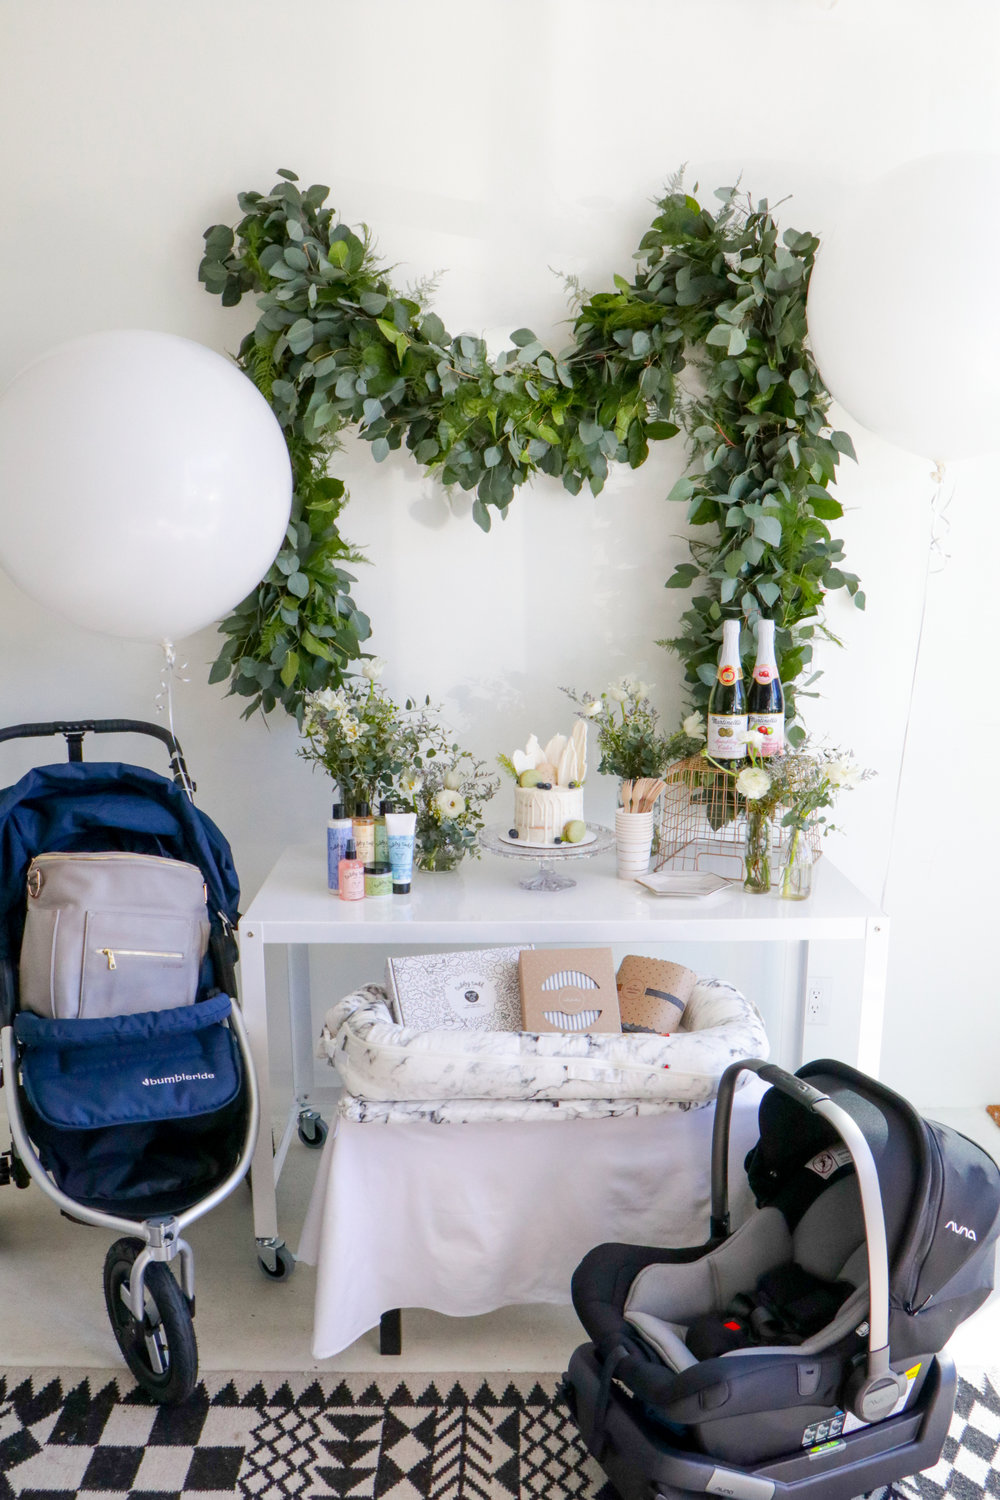 SurpriseBabyShower-11.jpg